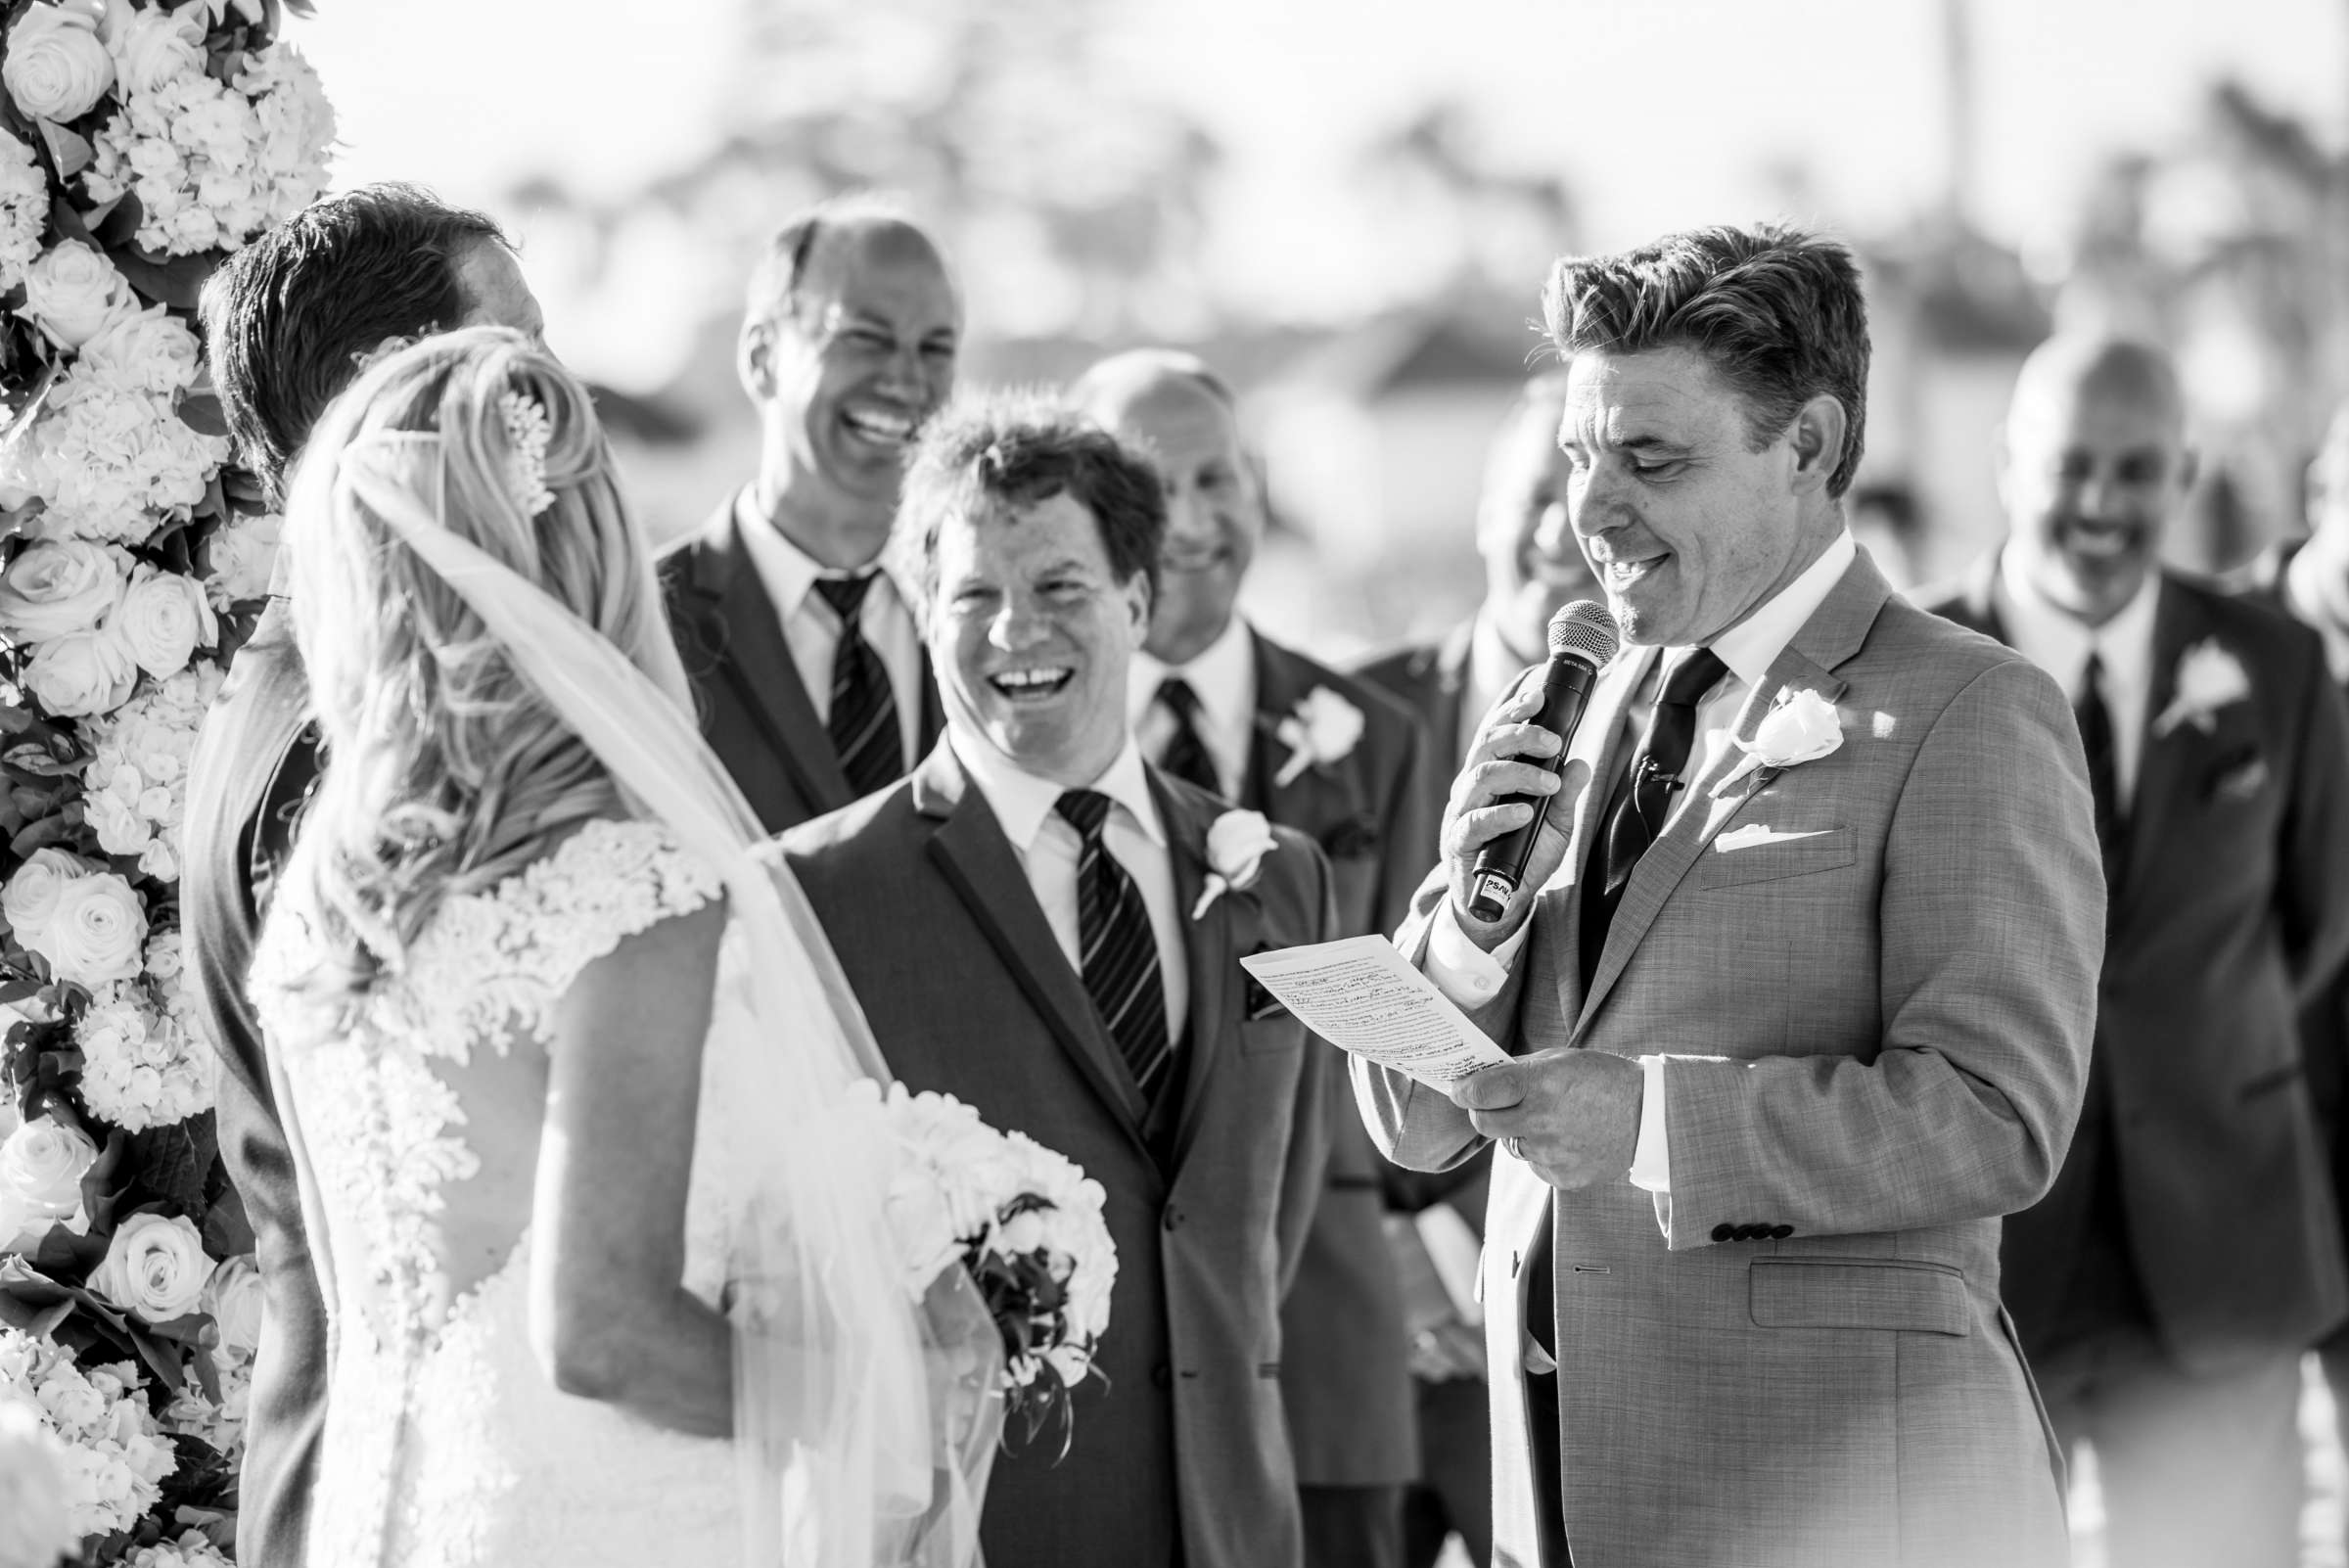 Hotel Del Coronado Wedding coordinated by Creative Affairs Inc, Diane and Paul Wedding Photo #59 by True Photography